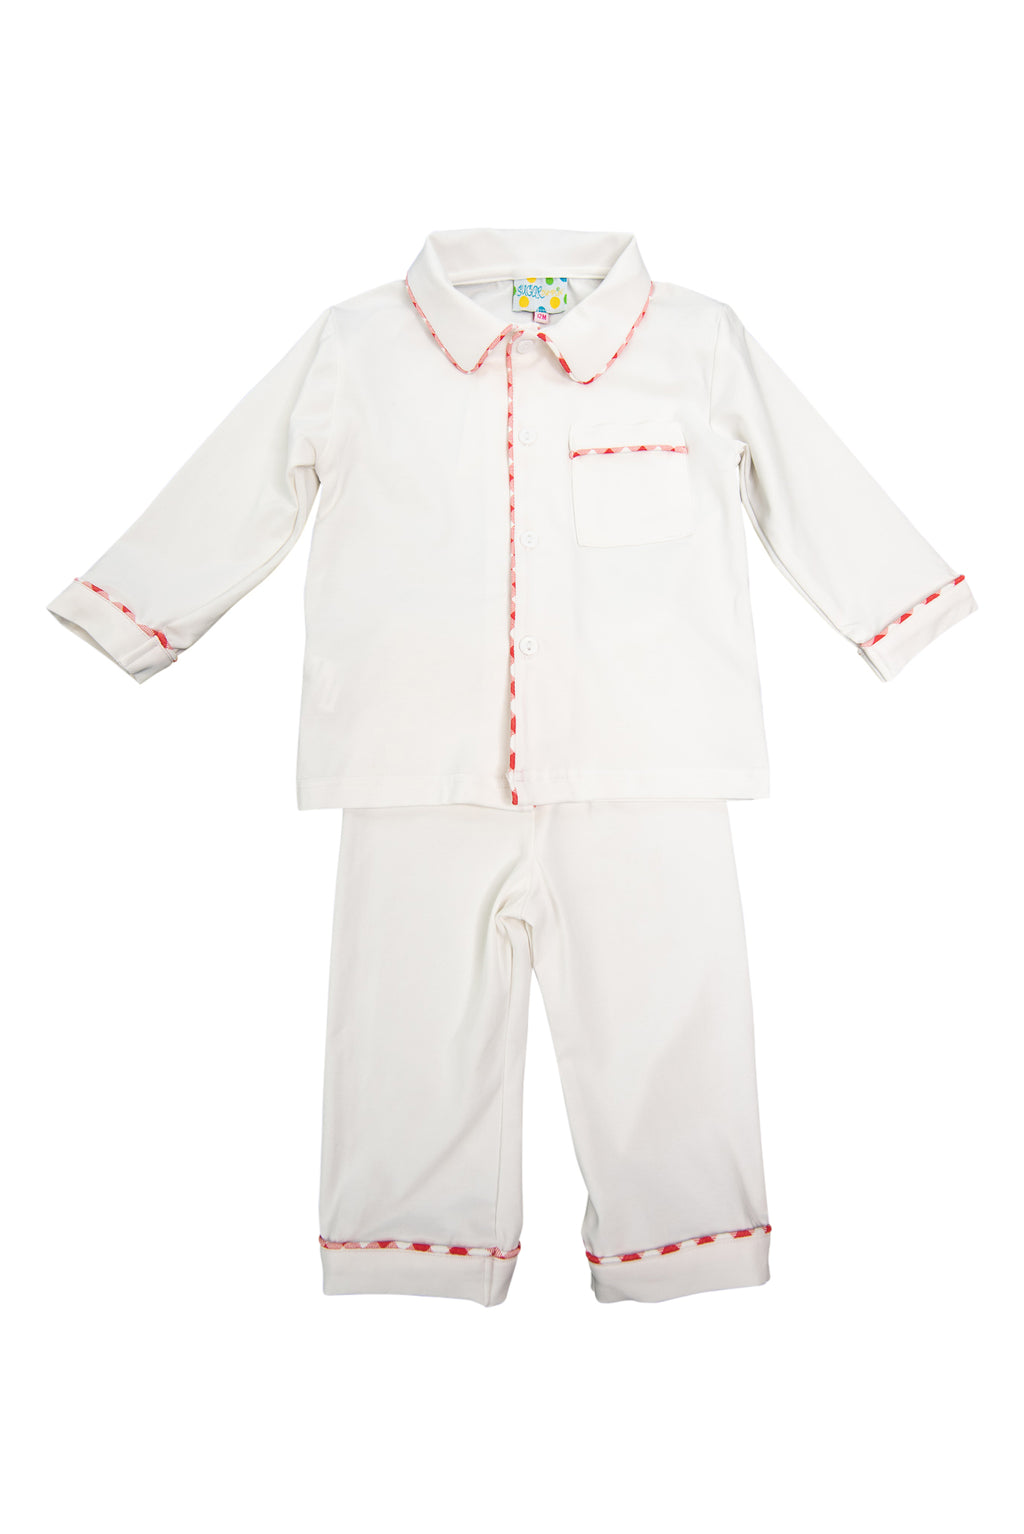 Boys White/Red Check Knit Pajama Pant Set